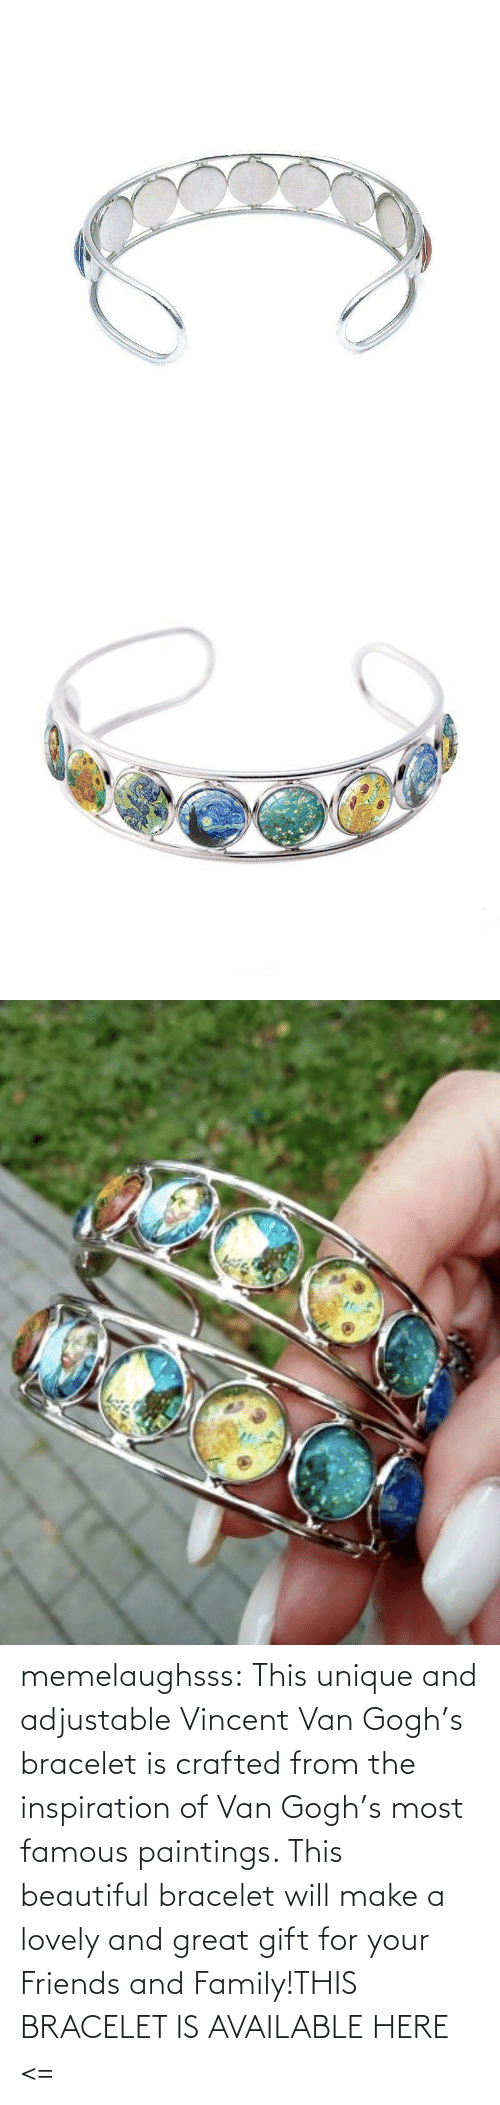 lovely: memelaughsss:  This unique and adjustable Vincent Van Gogh's bracelet is crafted from the inspiration of Van Gogh's most famous paintings. This beautiful bracelet will make a lovely and great gift for your Friends and Family!THIS BRACELET IS AVAILABLE HERE <=